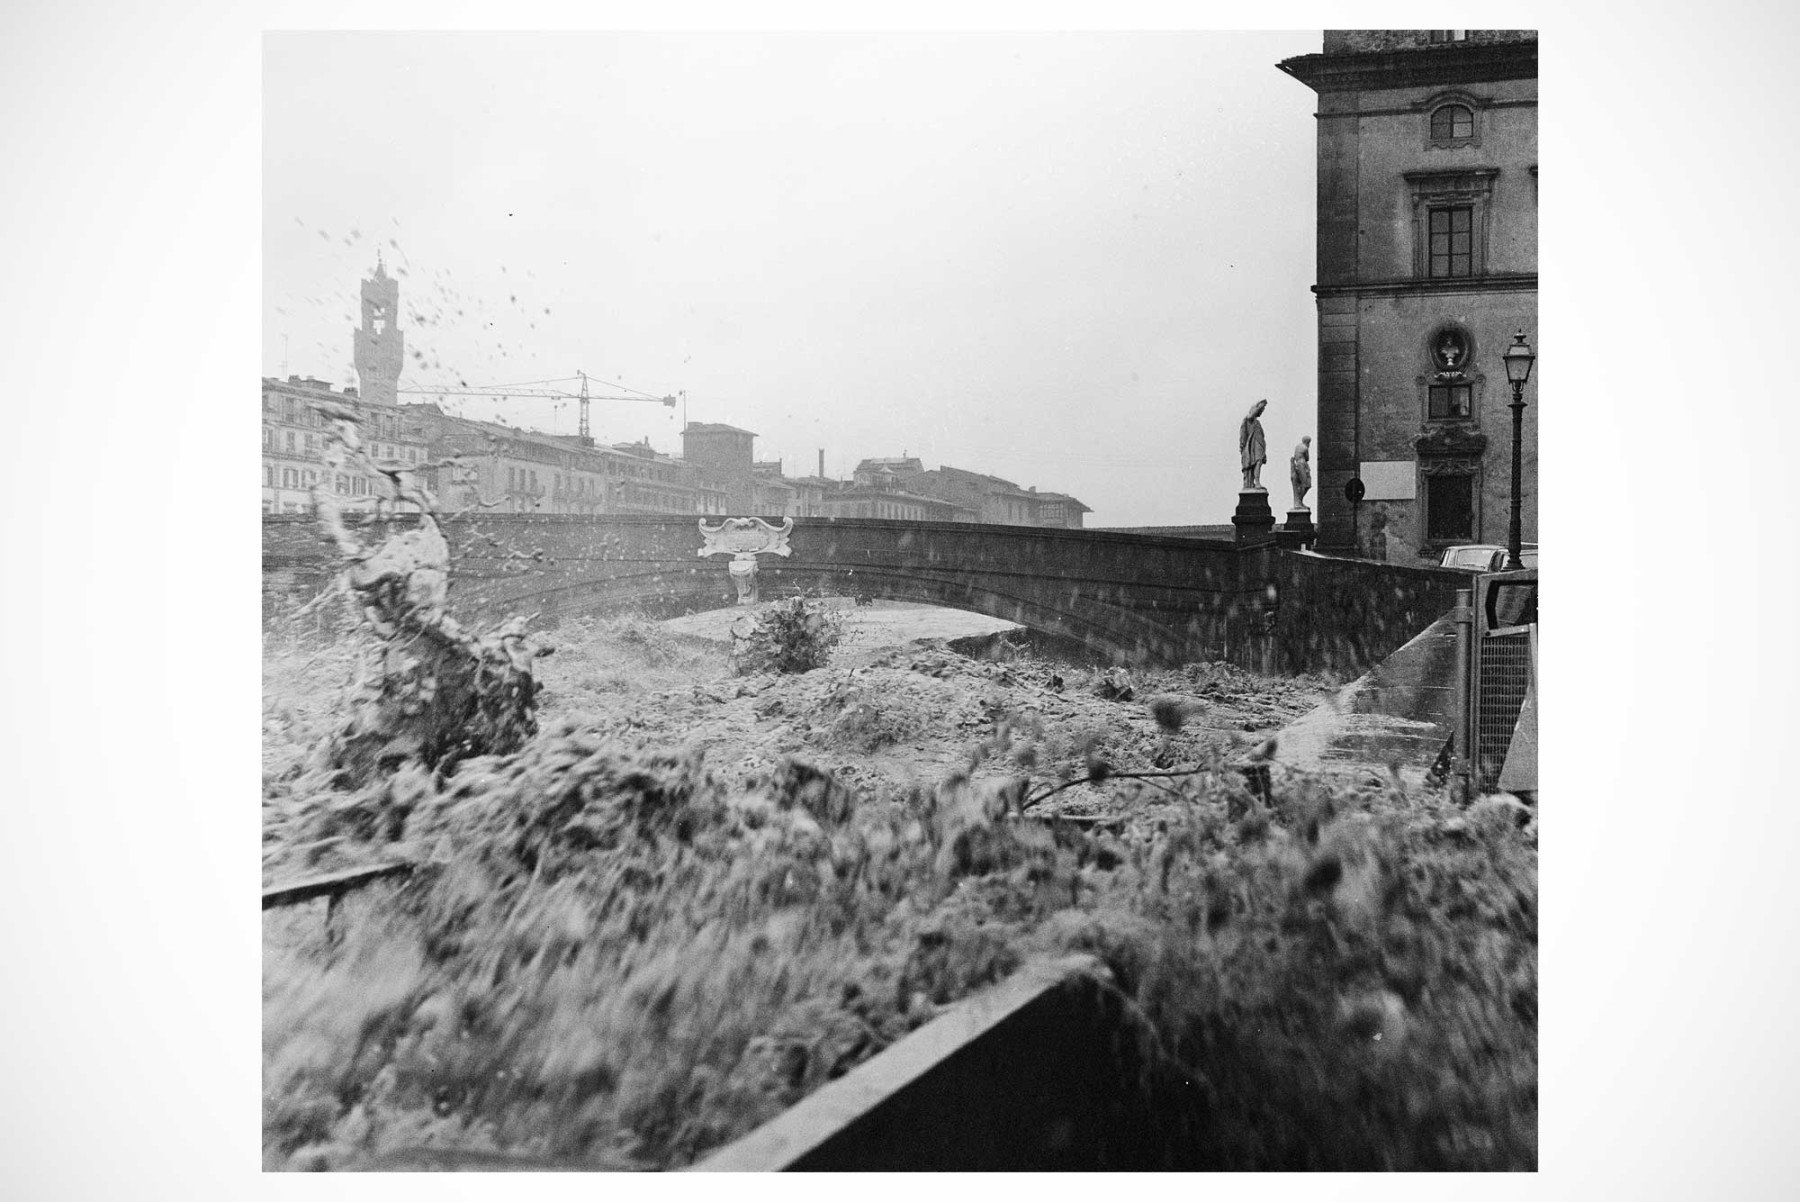 Balthazar Korab |   Spalleta - vintage print from the Florence Flood collection